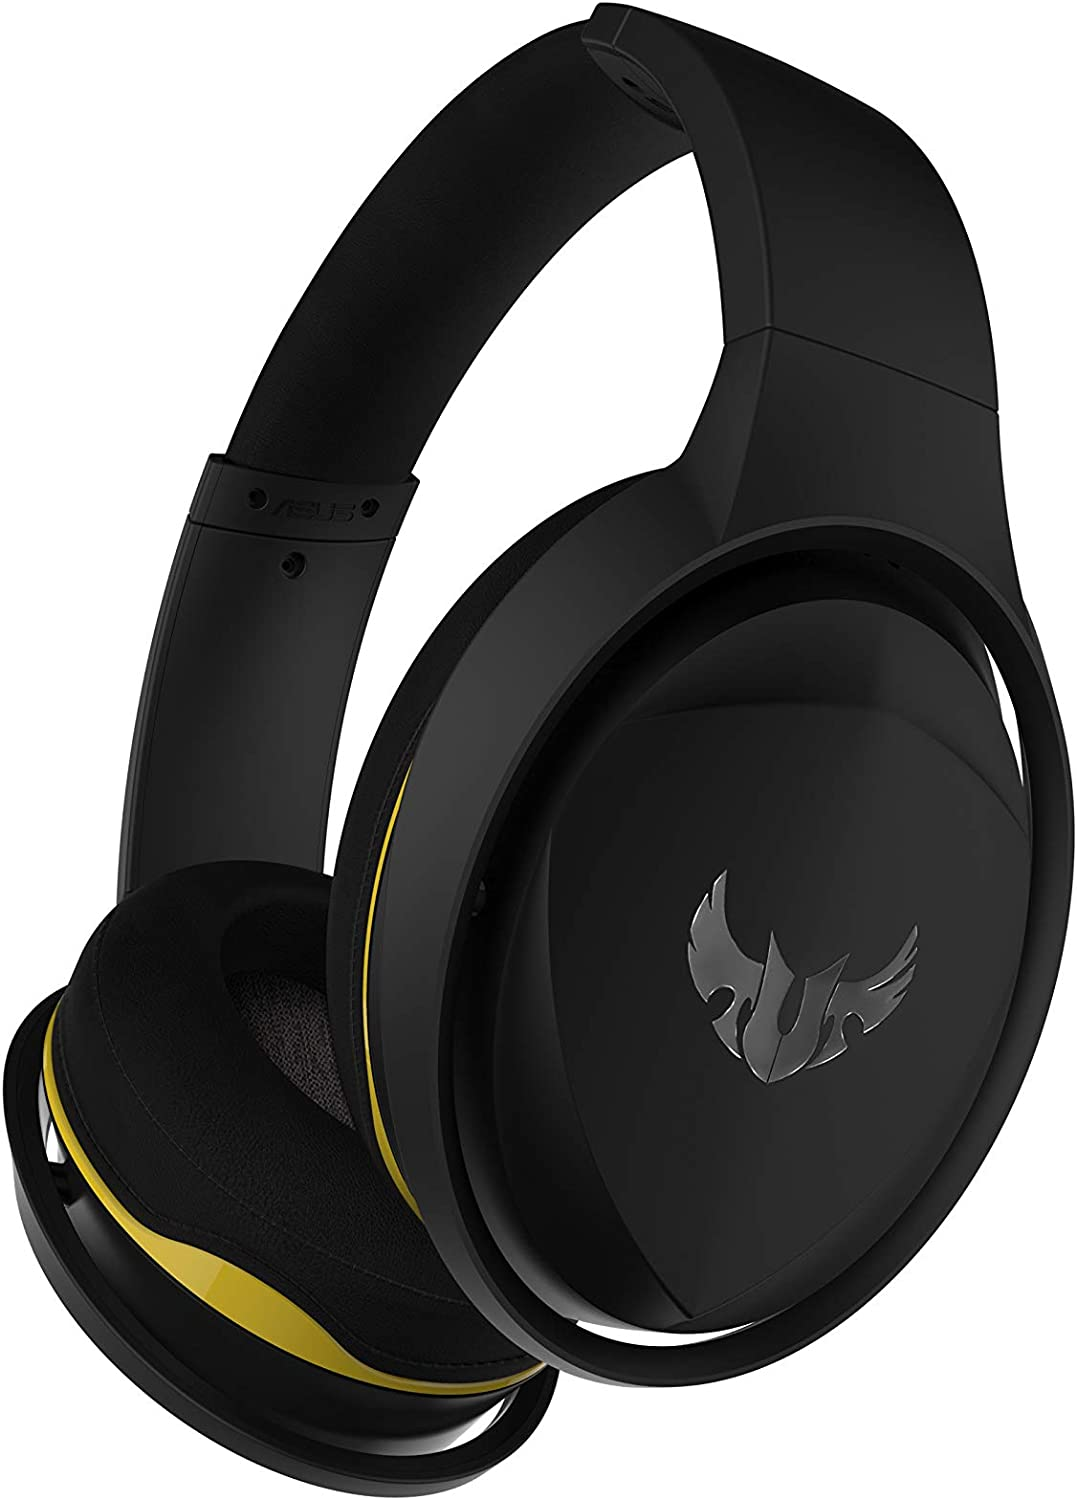 ASUS TUF Gaming H5 - Auriculares, Compatible con PC-PS4 -Mac-Xbox One -Nintendo Switch y Smartphones, Sonido 7.1 Virtual, Dos micrófonos, USB 2.0